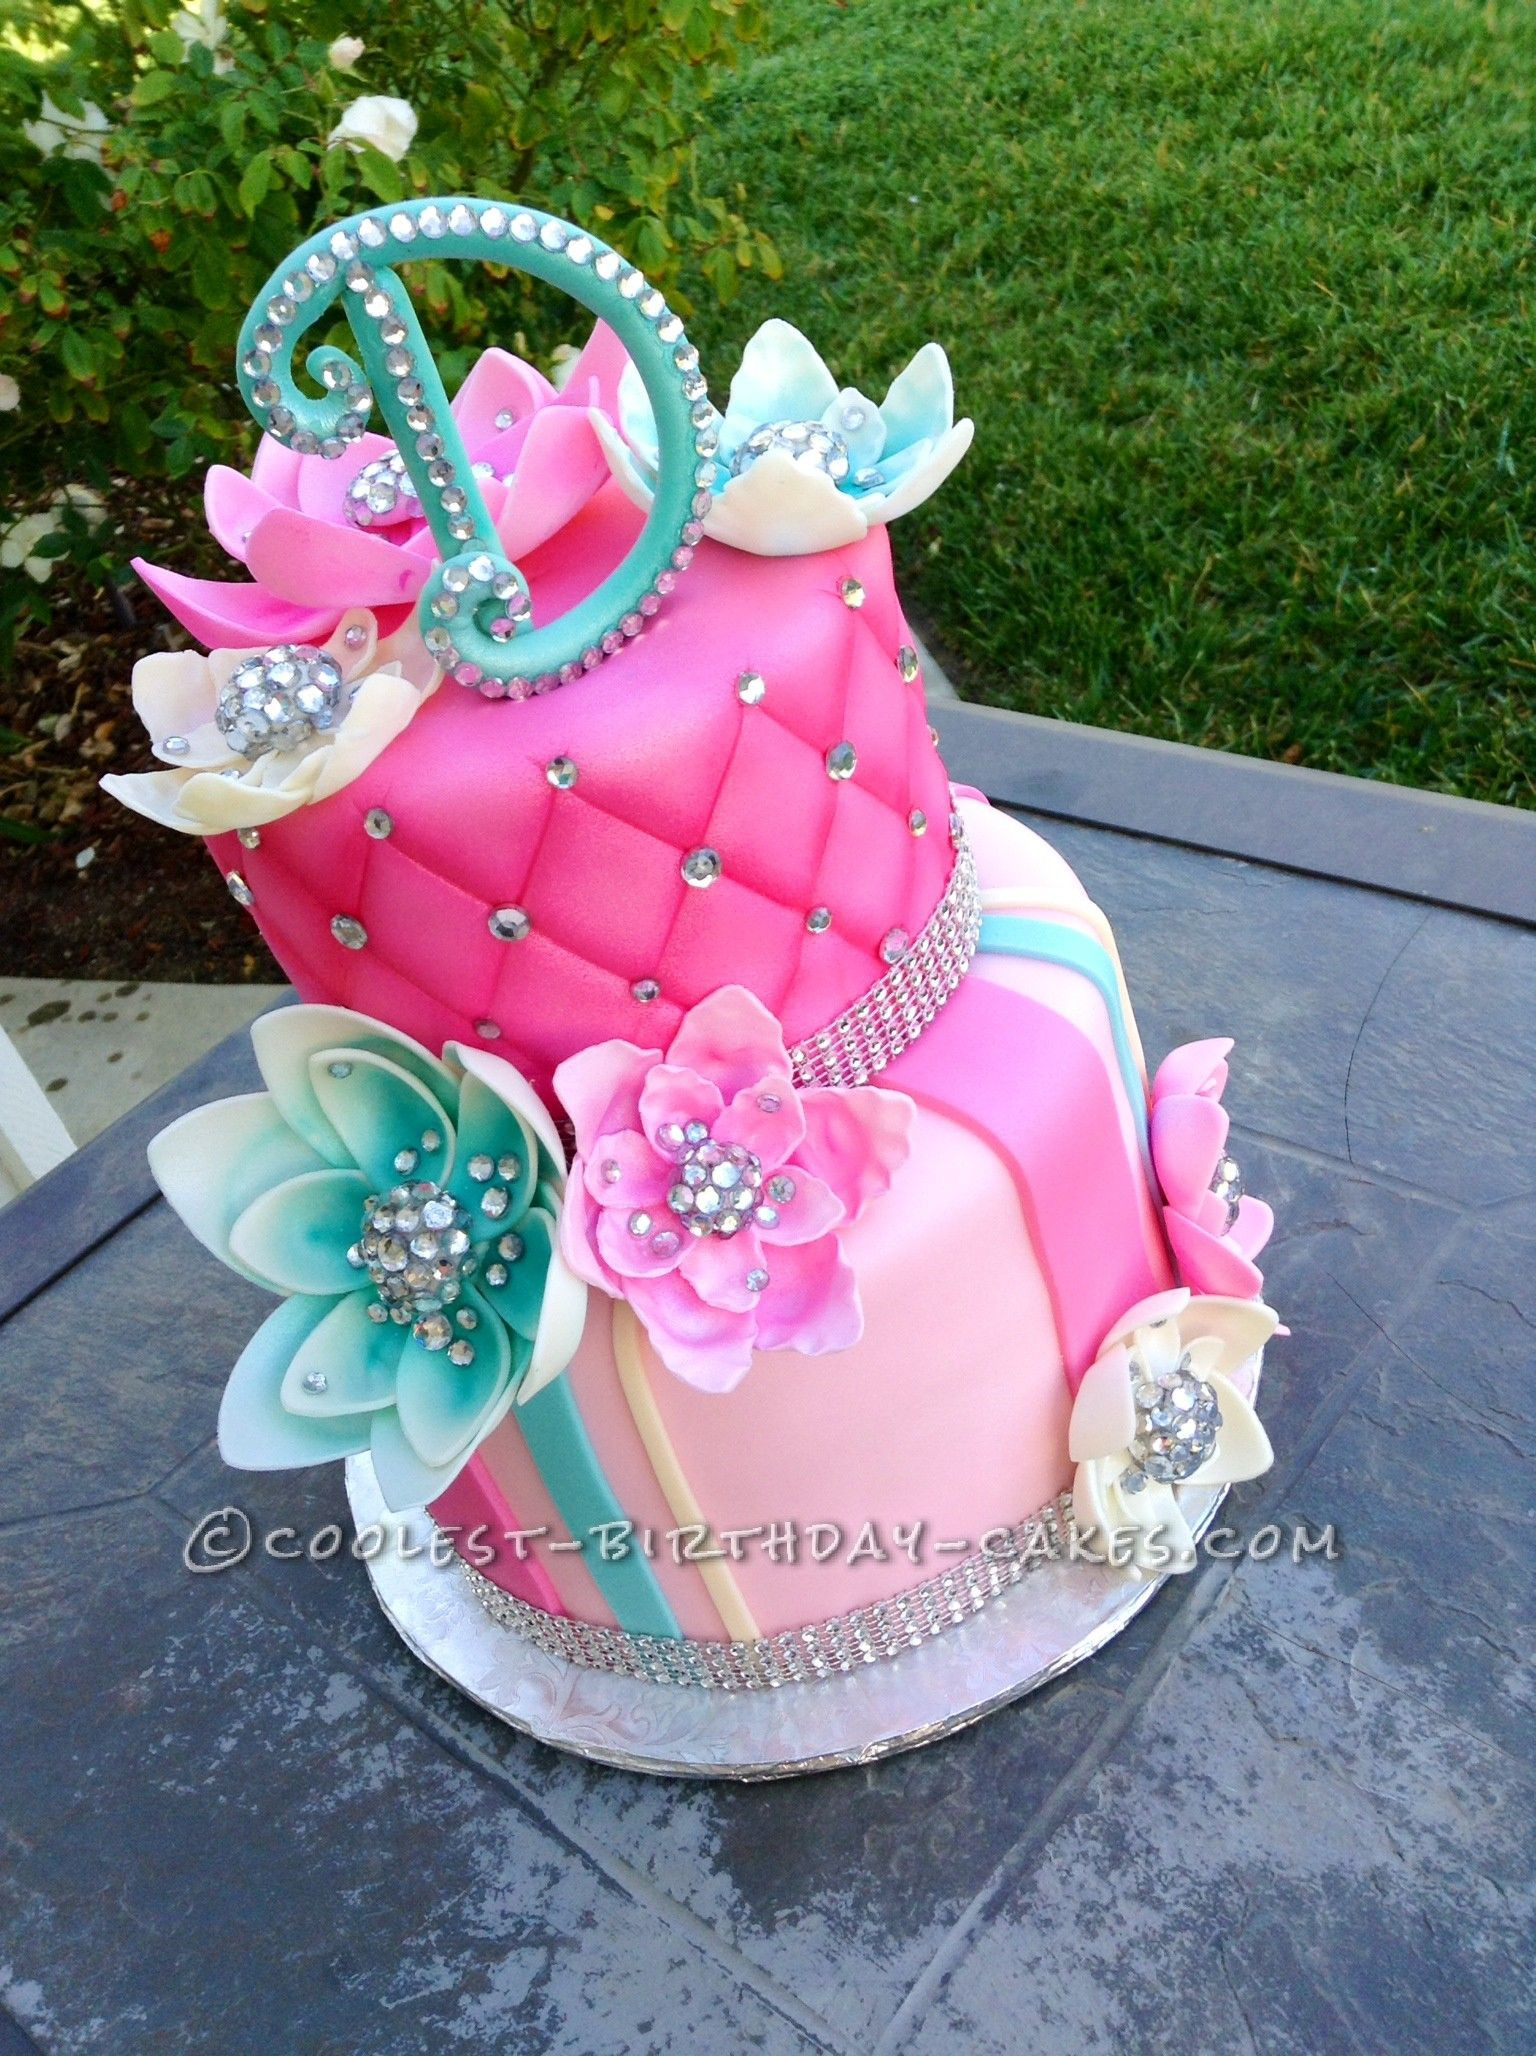 Best ideas about Birthday Cake Ideas For Girls . Save or Pin Delicious Homemade Beautiful Birthday Cake With Bling in Now.